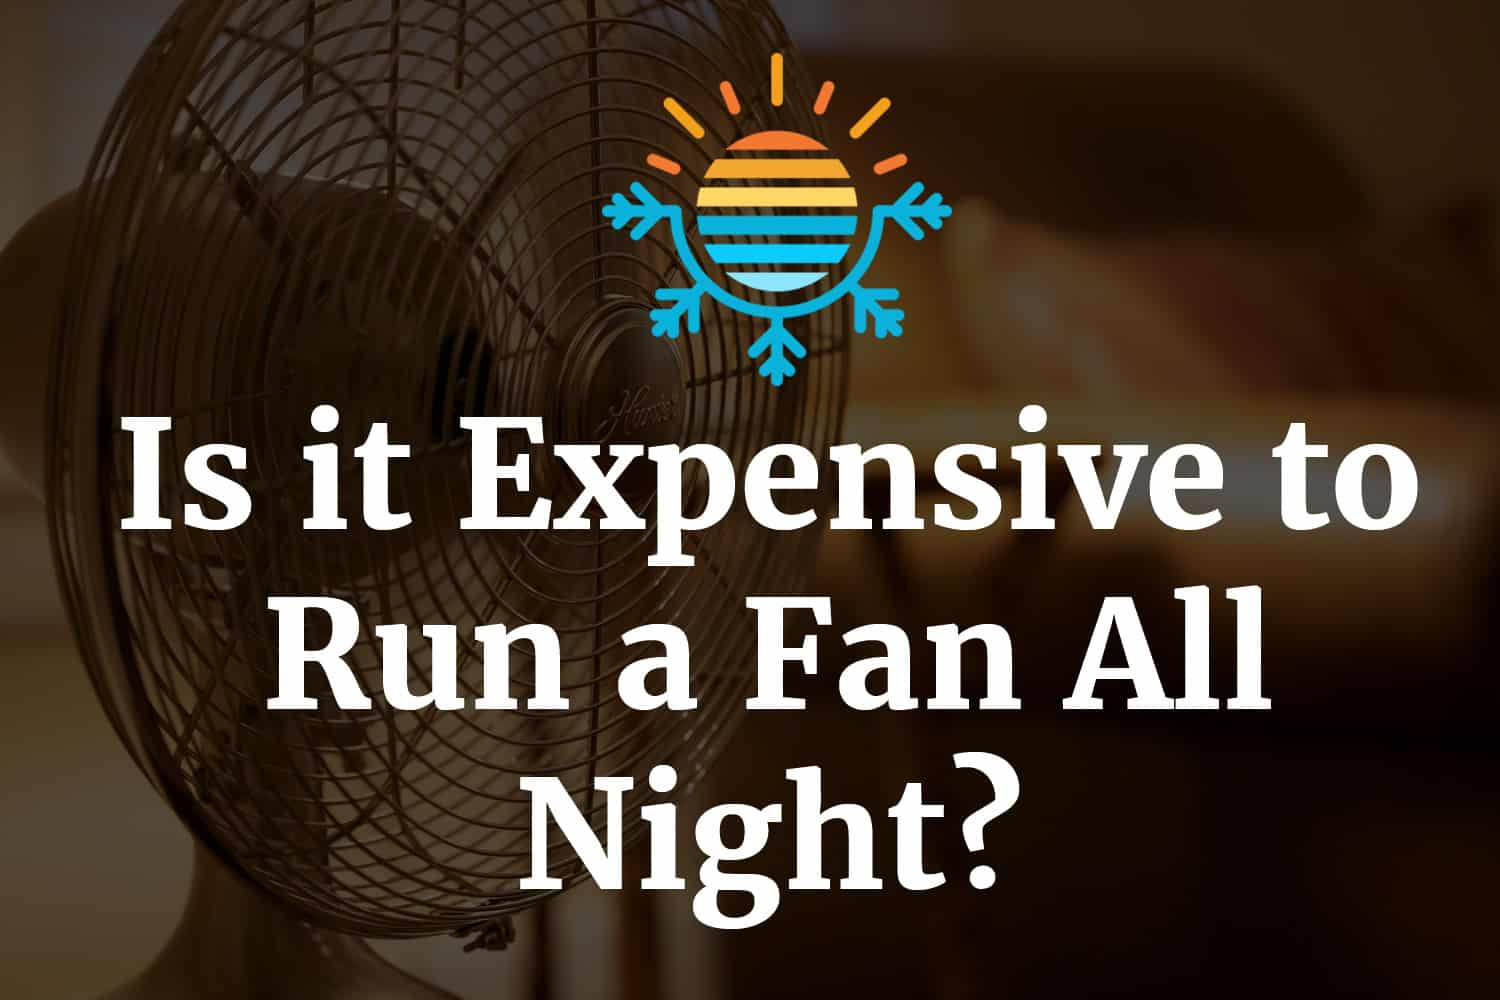 Is it expensive to run a fan all night